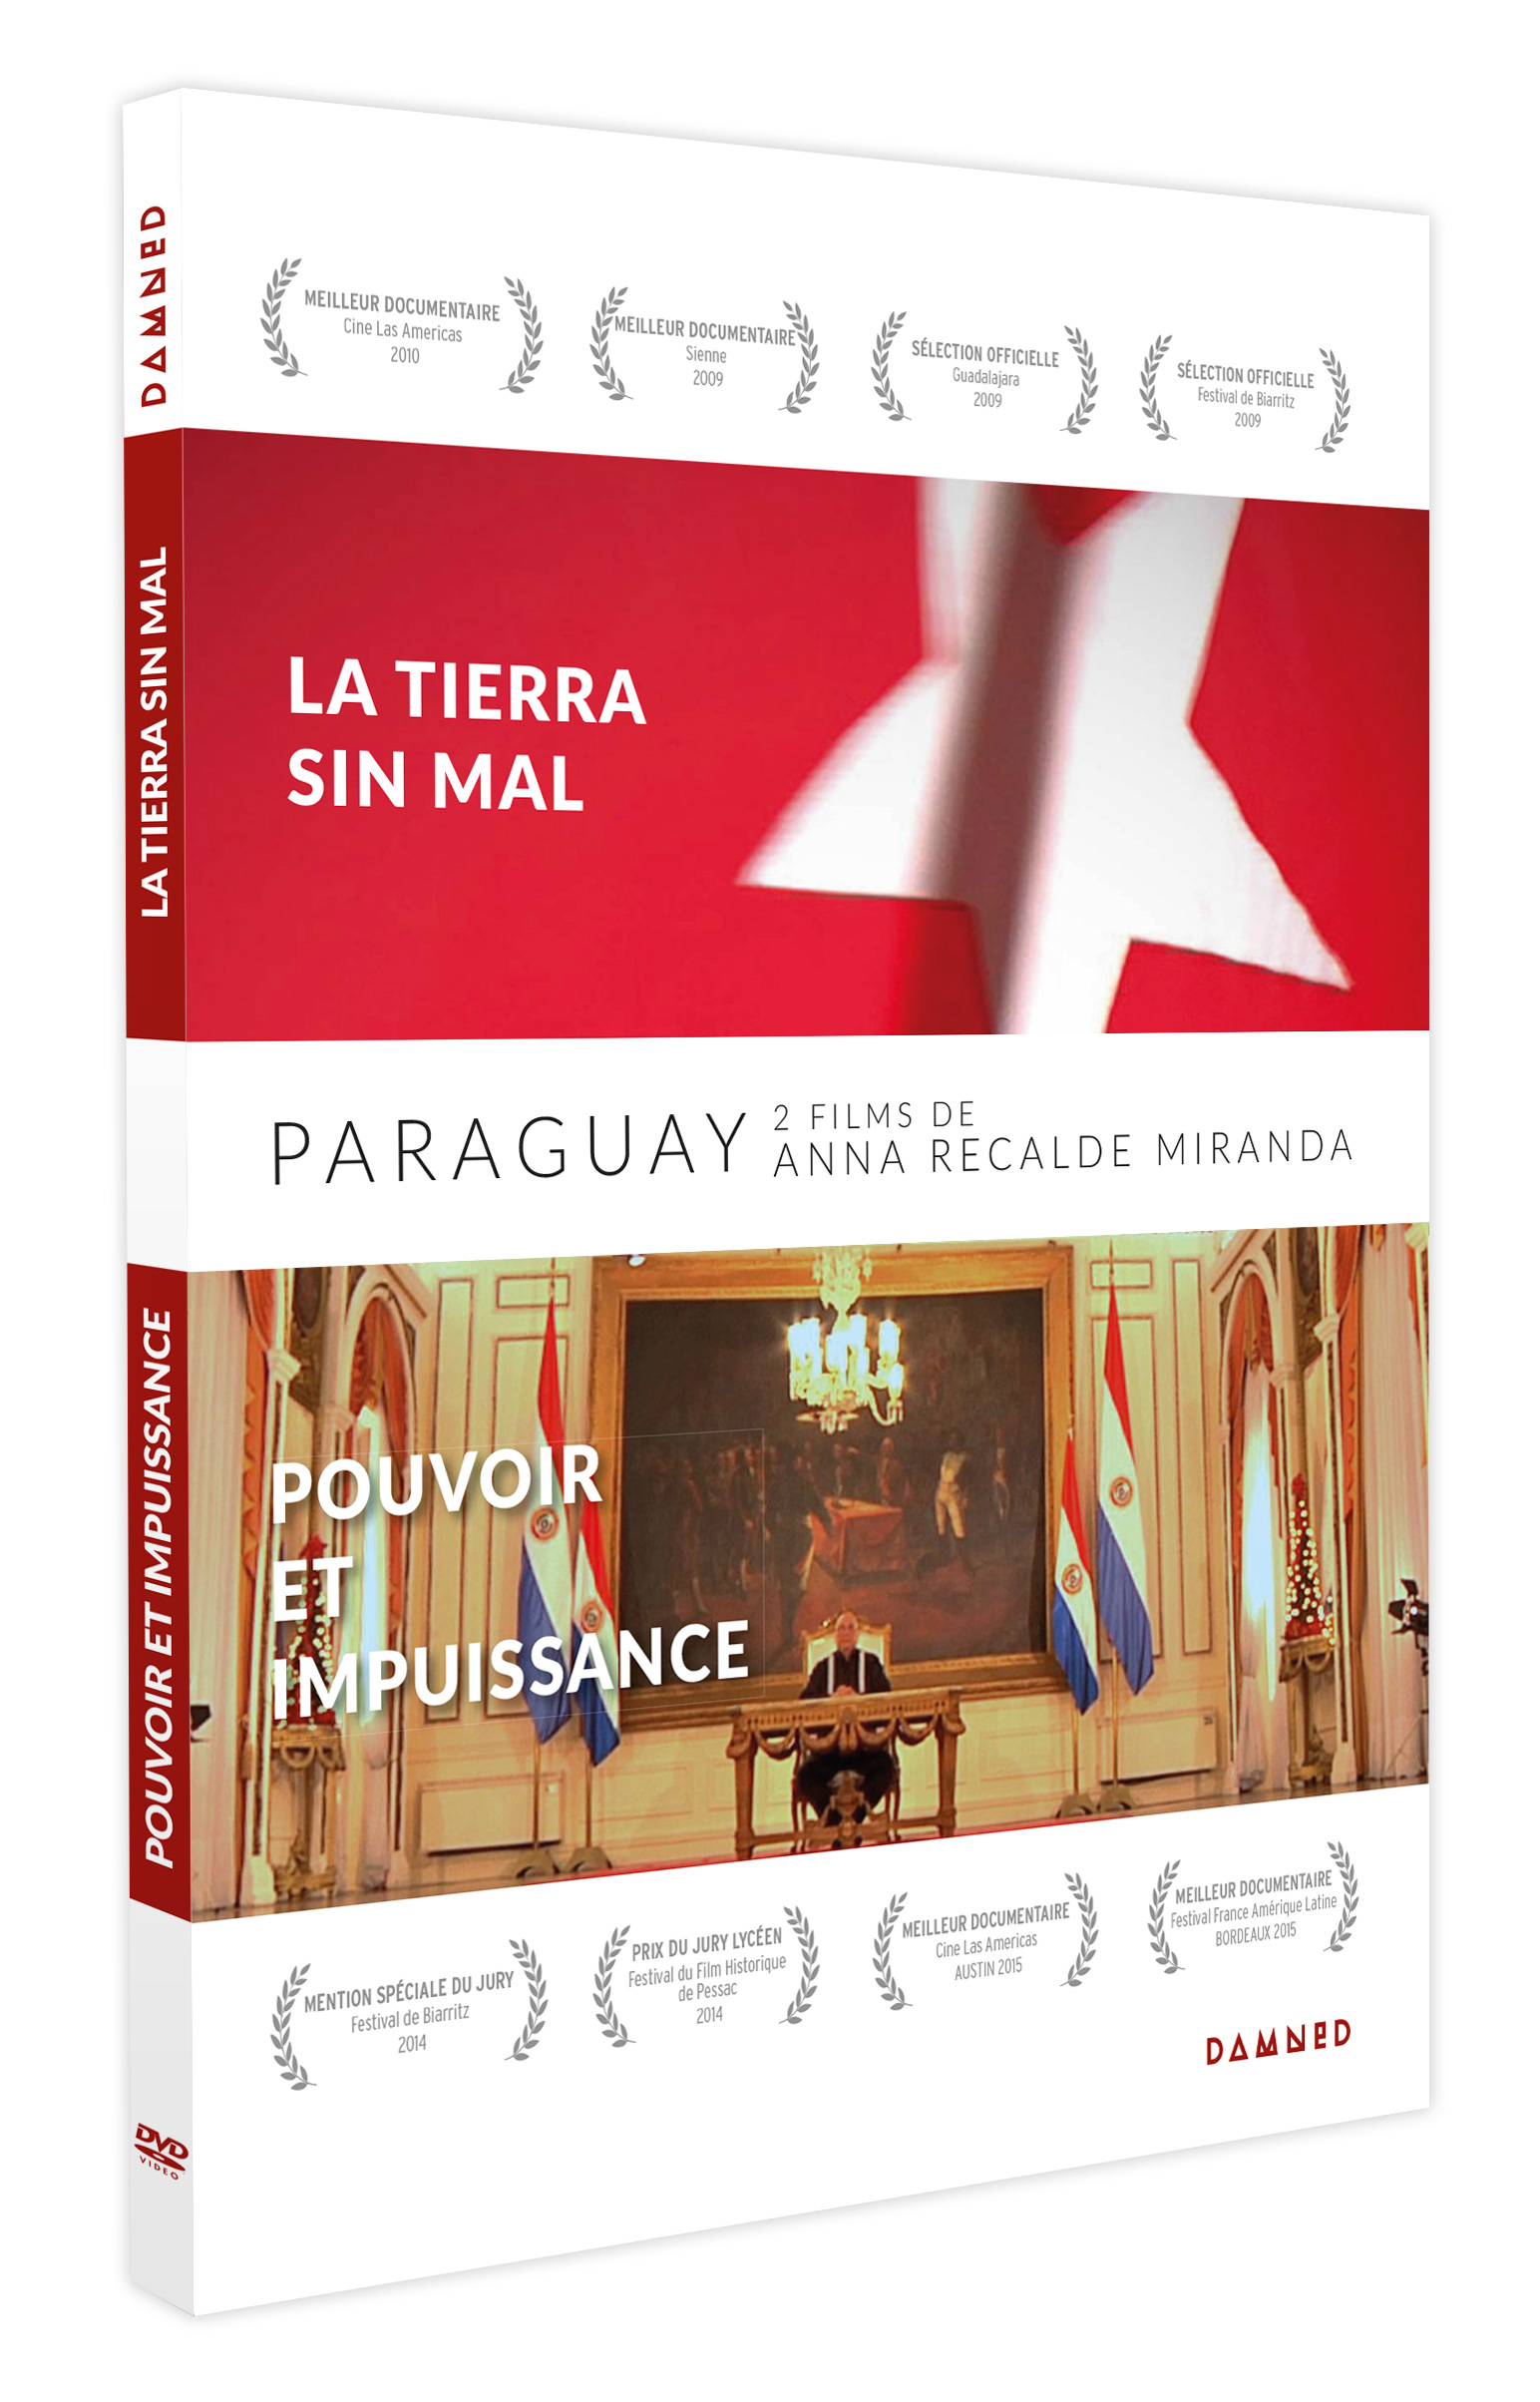 icone_dvd_paraguay.jpg